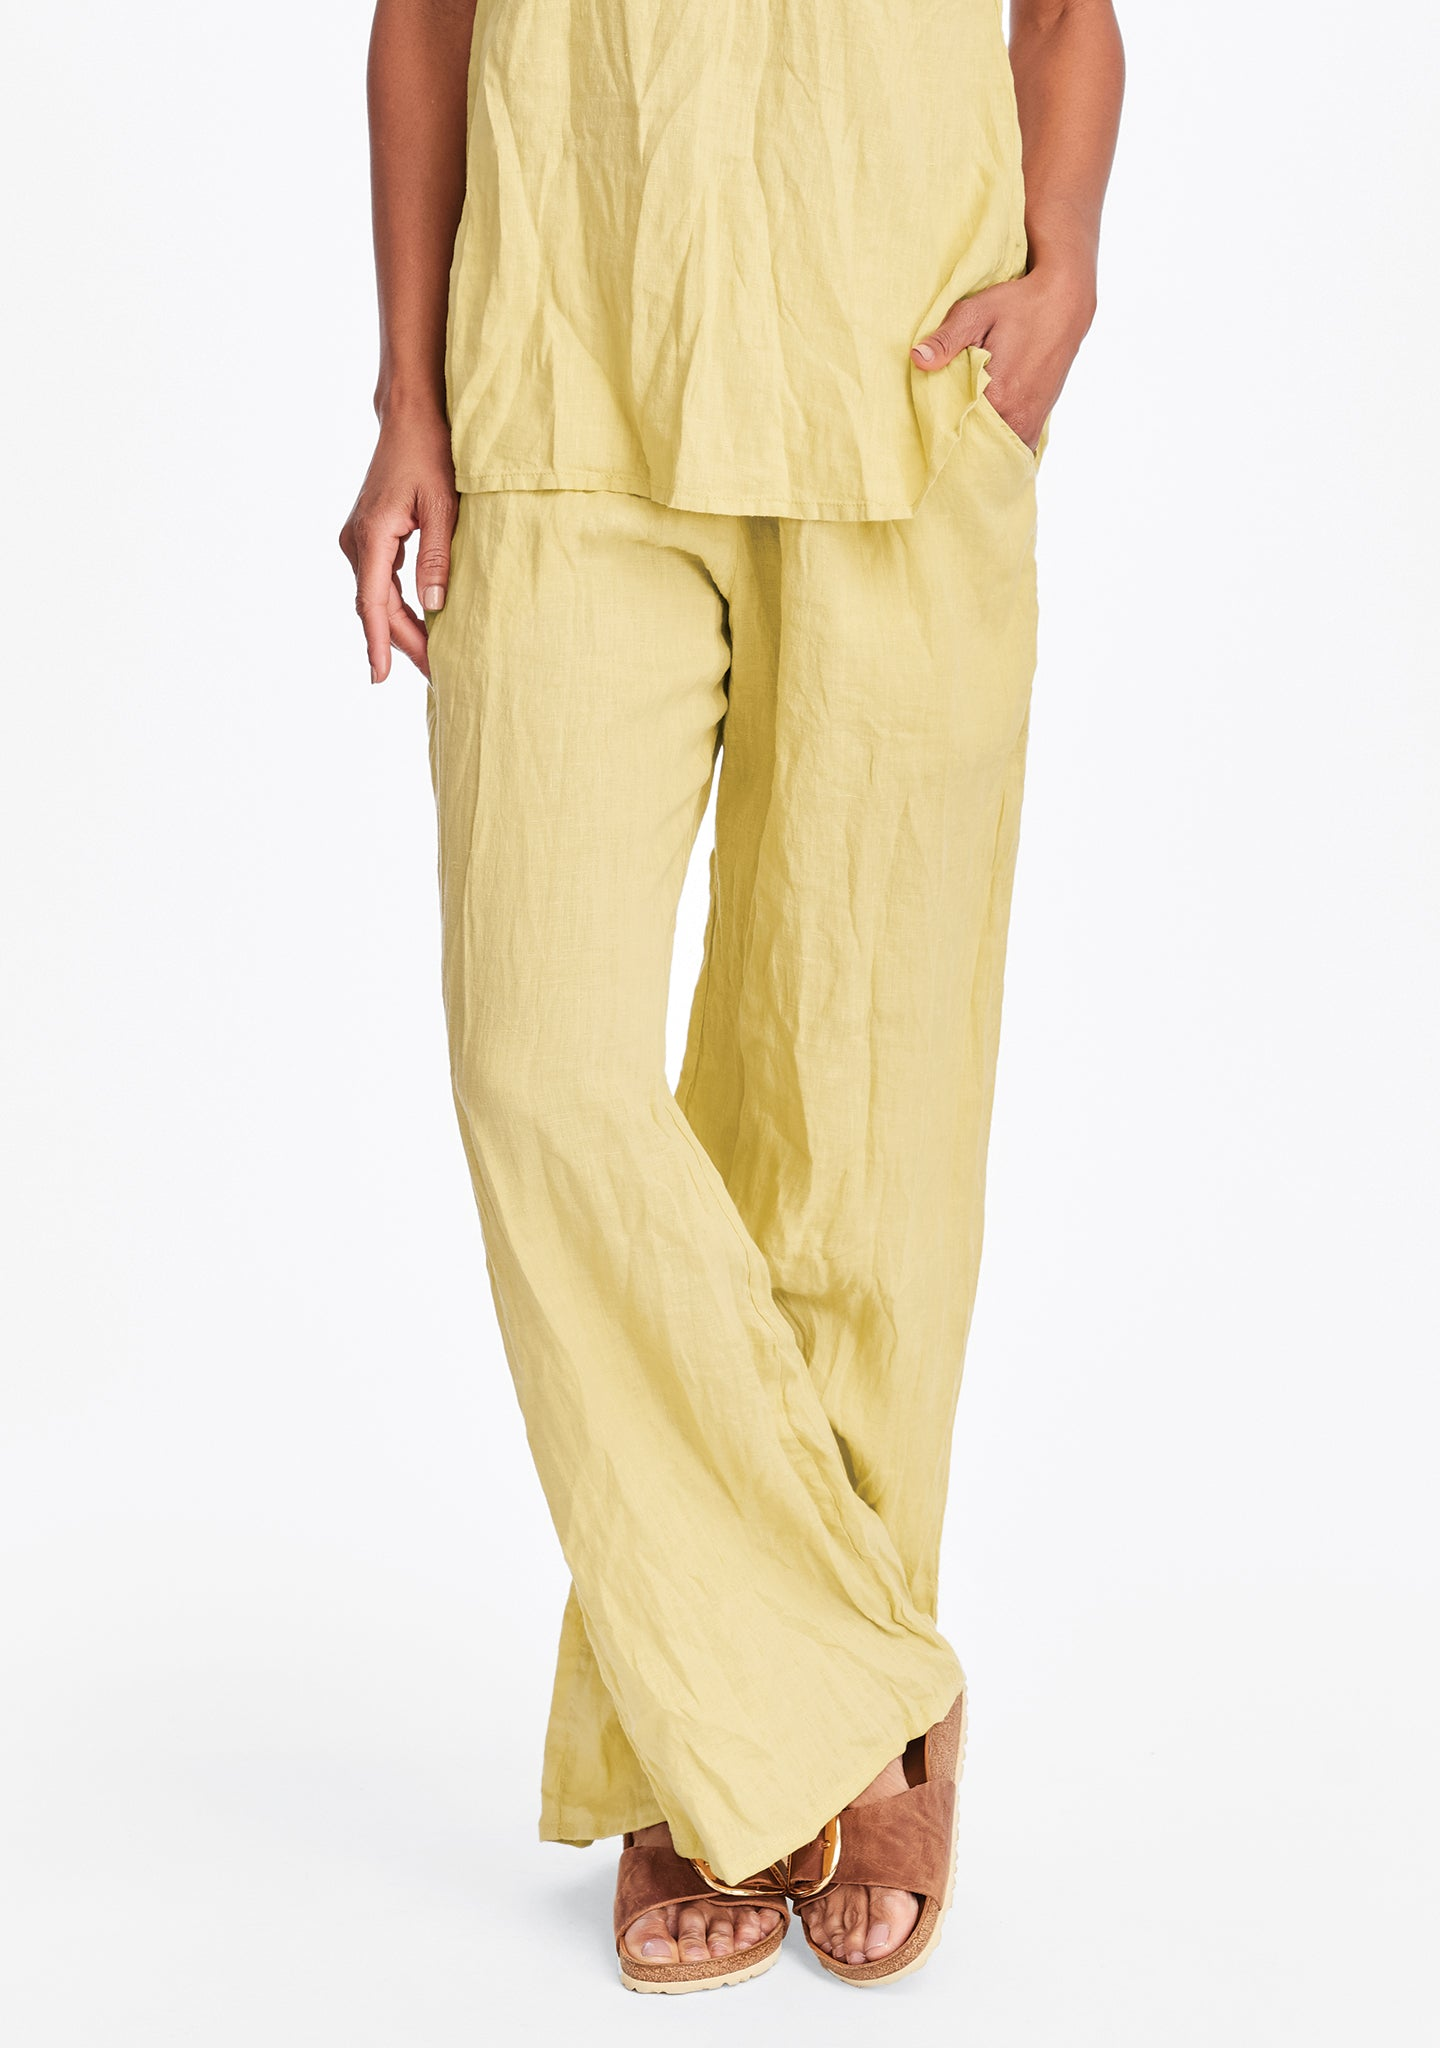 flat iron pant linen drawstring pants yellow